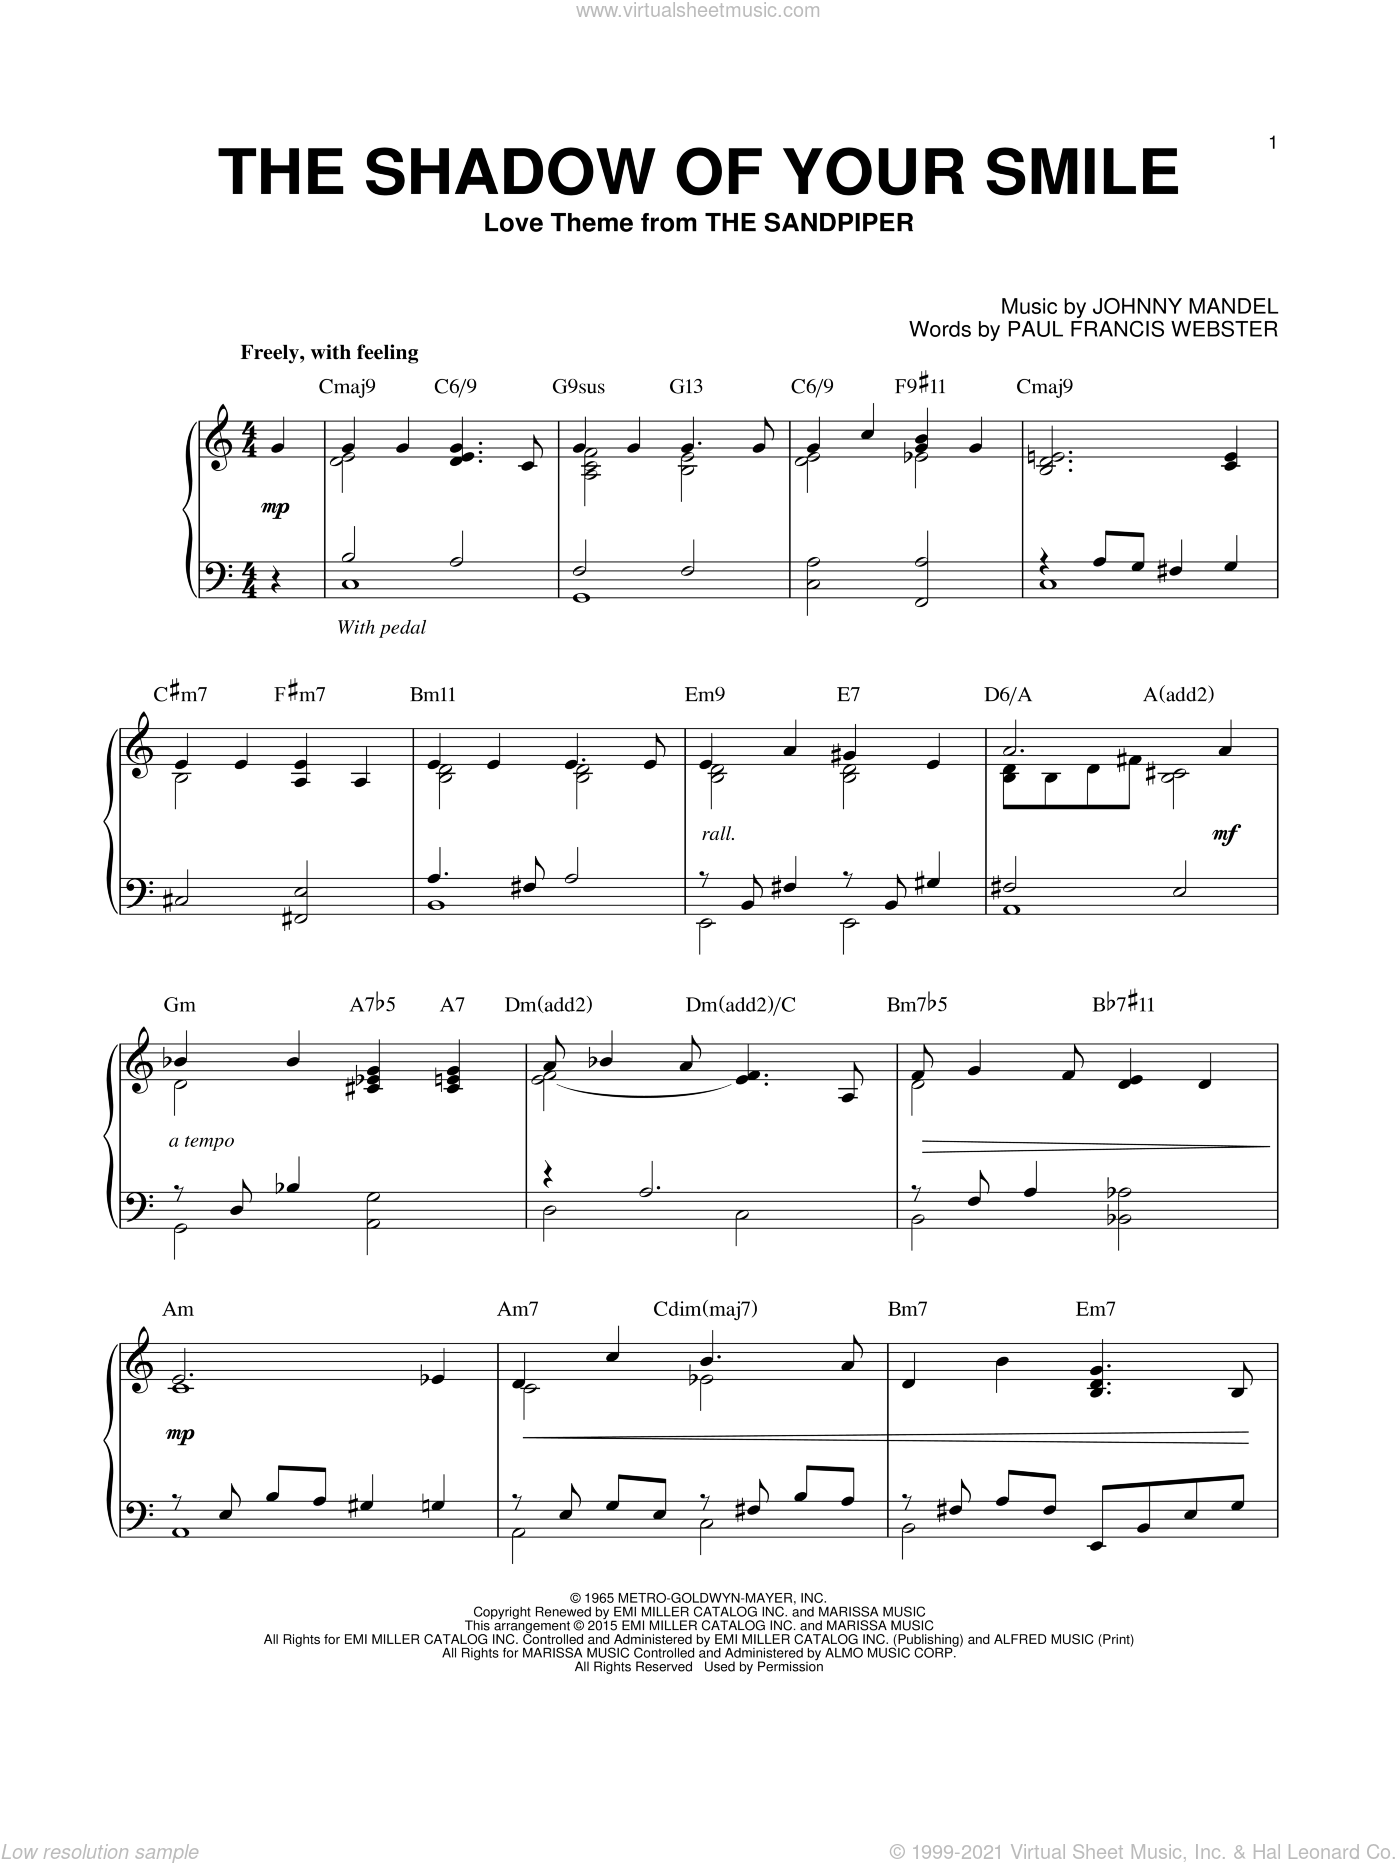 The Shadow Of Your Smile sheet music for piano solo by Paul Francis Webster and Johnny Mandel. Score Image Preview.